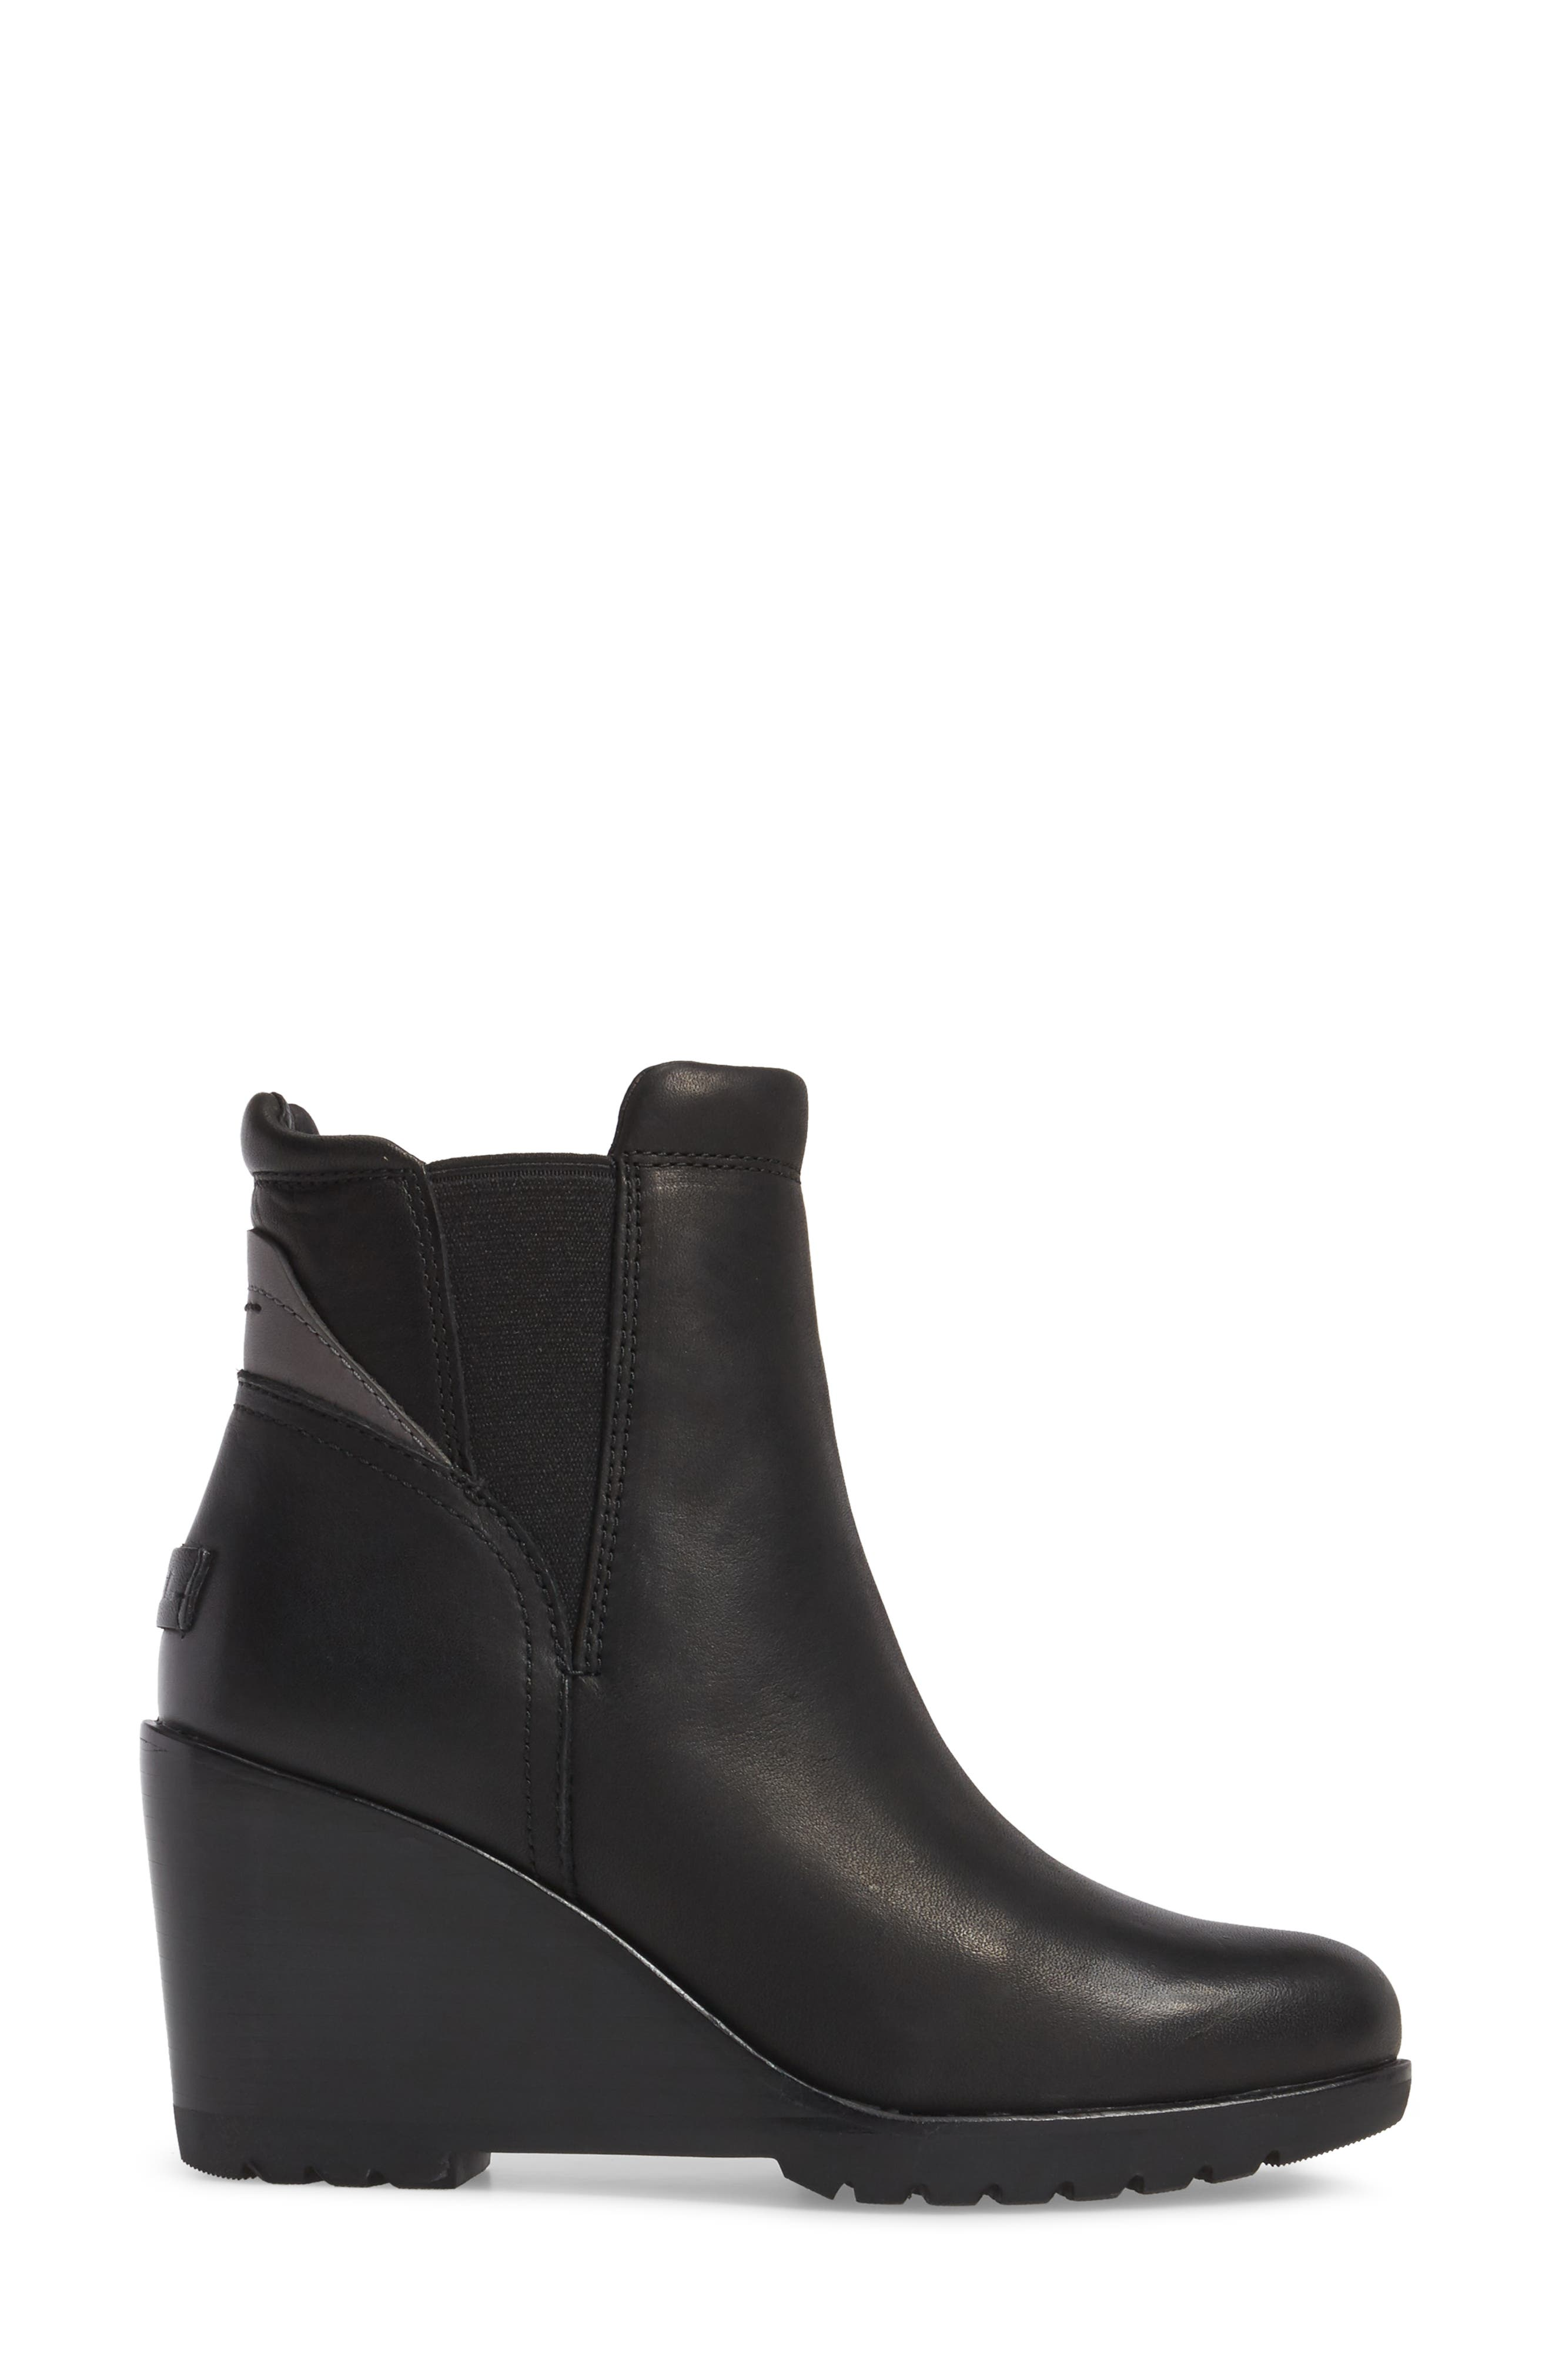 After Hours Chelsea Boot,                             Alternate thumbnail 12, color,